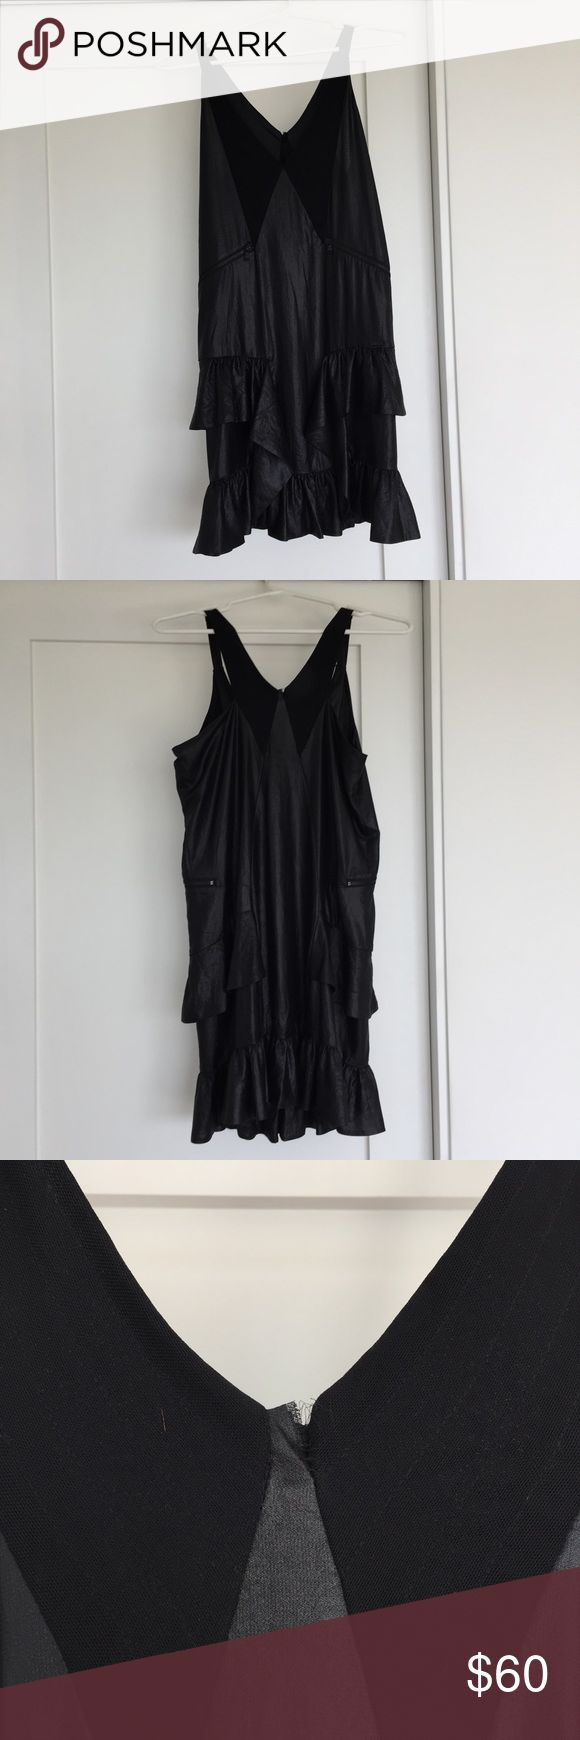 DIESEL black dress This DIESEL dress is super fun. It has zipper accents and is a mix of shiny and stitched fabric. It's got cute ruffles at the bottom too! There is a small tear in the stitching in the back/top of the dress but it's only been worn one time and is in great condition besides that. Diesel Dresses Mini